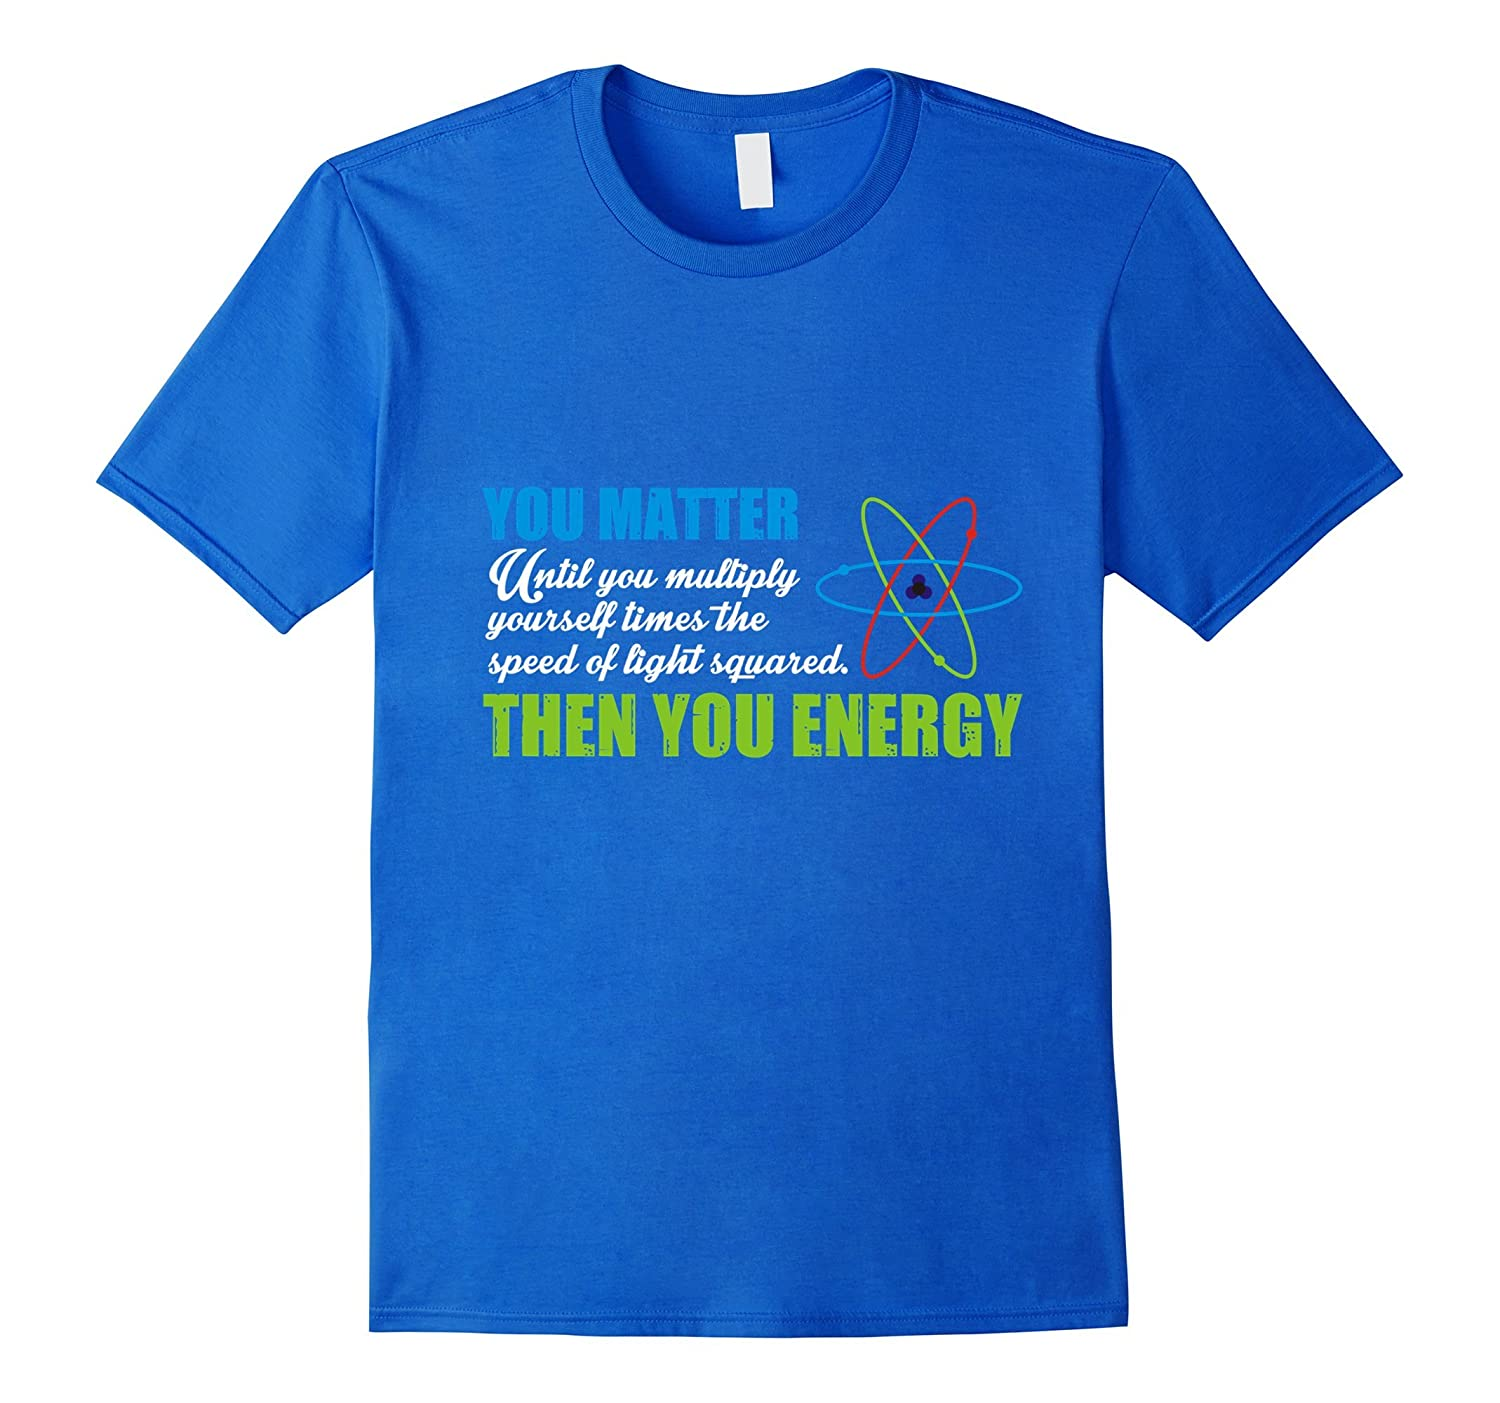 54f4f58d7 You Matter Then You Energy T-Shirt Funny SciencePhysics Tee-TD ...